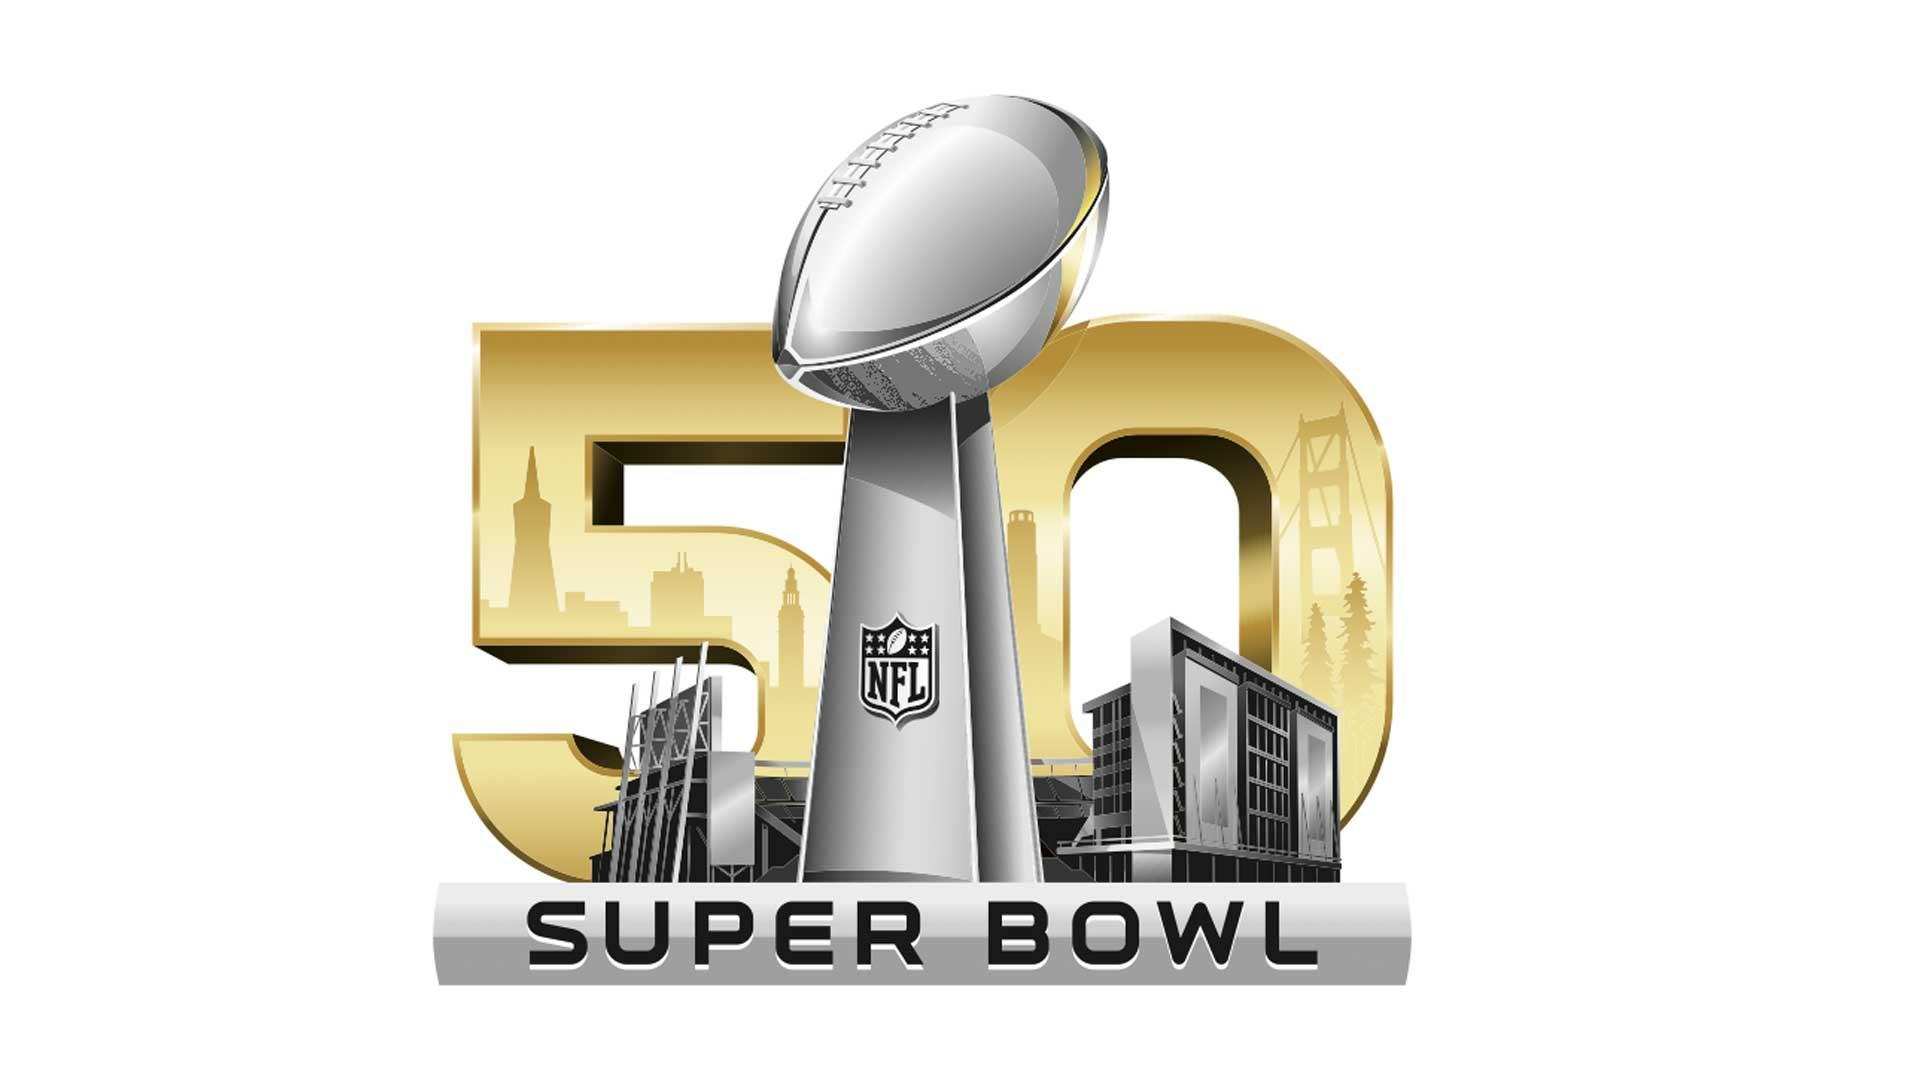 The death of the Super Bowl logo.